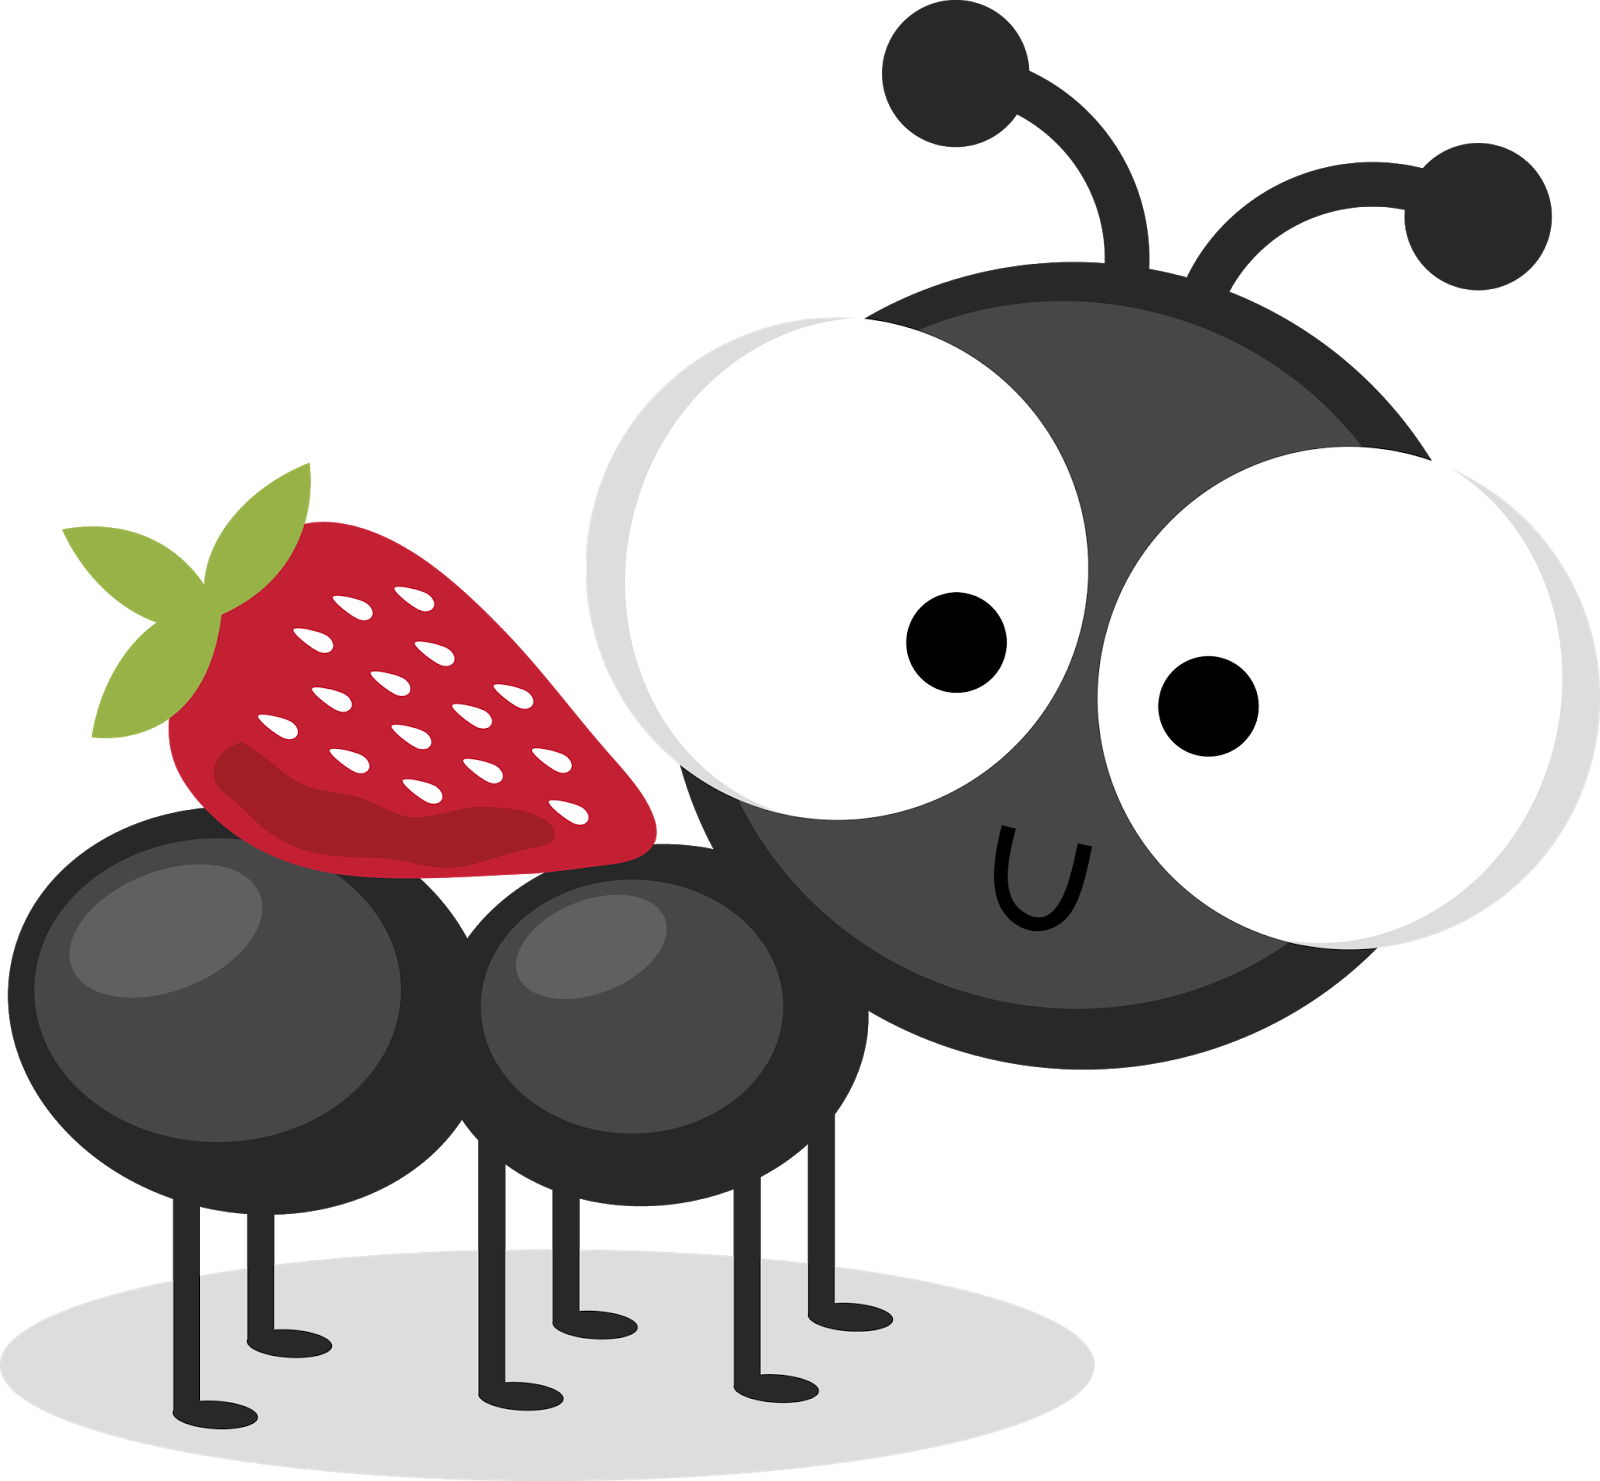 clipart royalty free library Picnic ants clipart. Ant cricut clip art